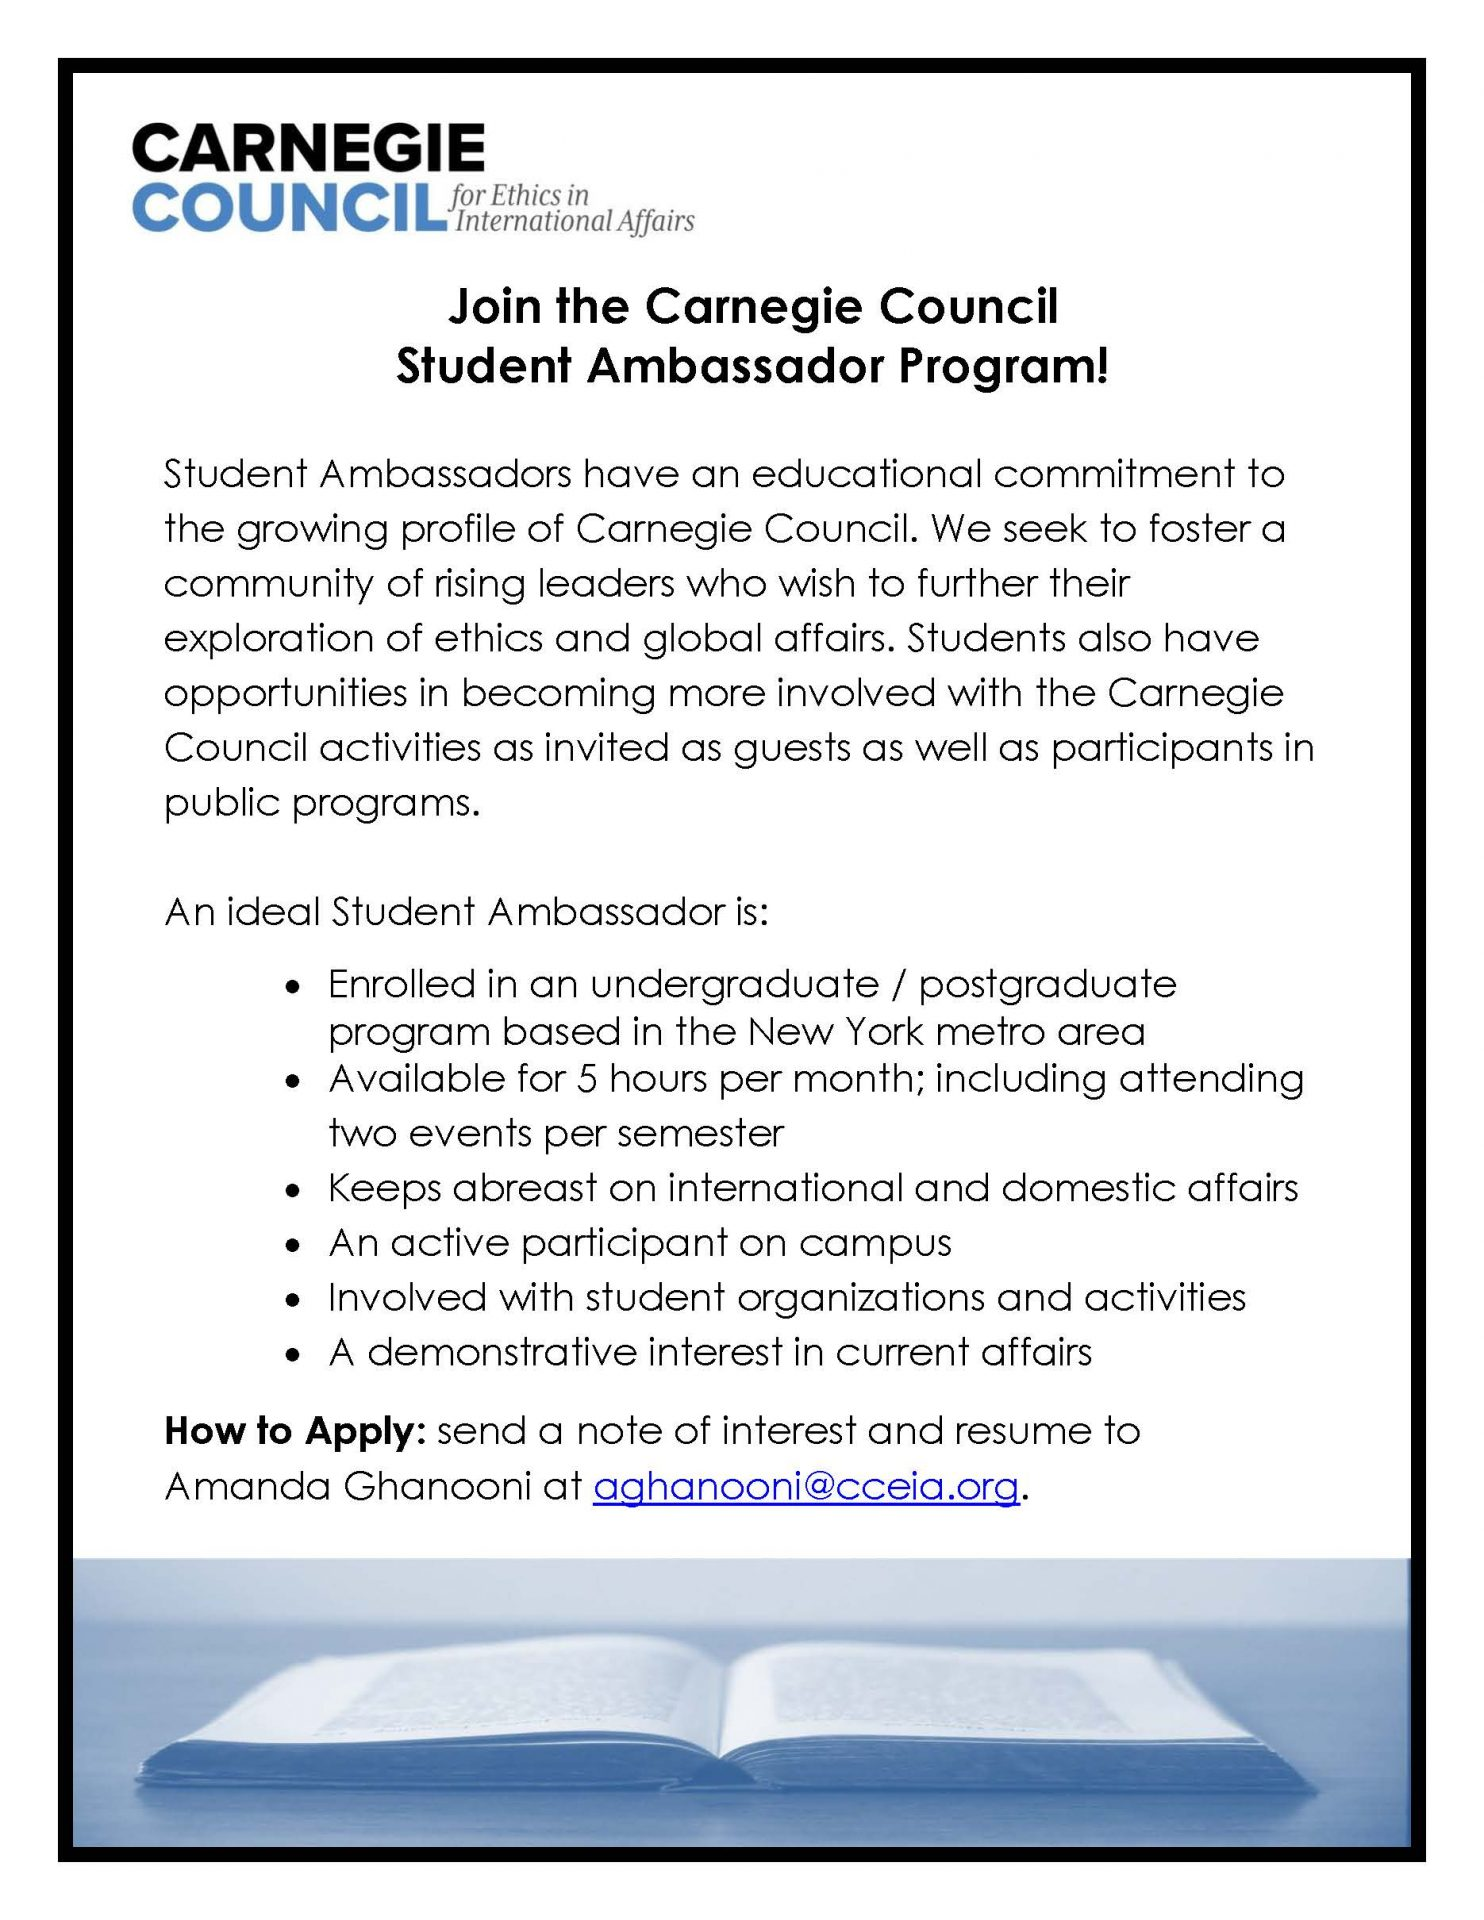 Carnegie Council Student Ambassadorship Program